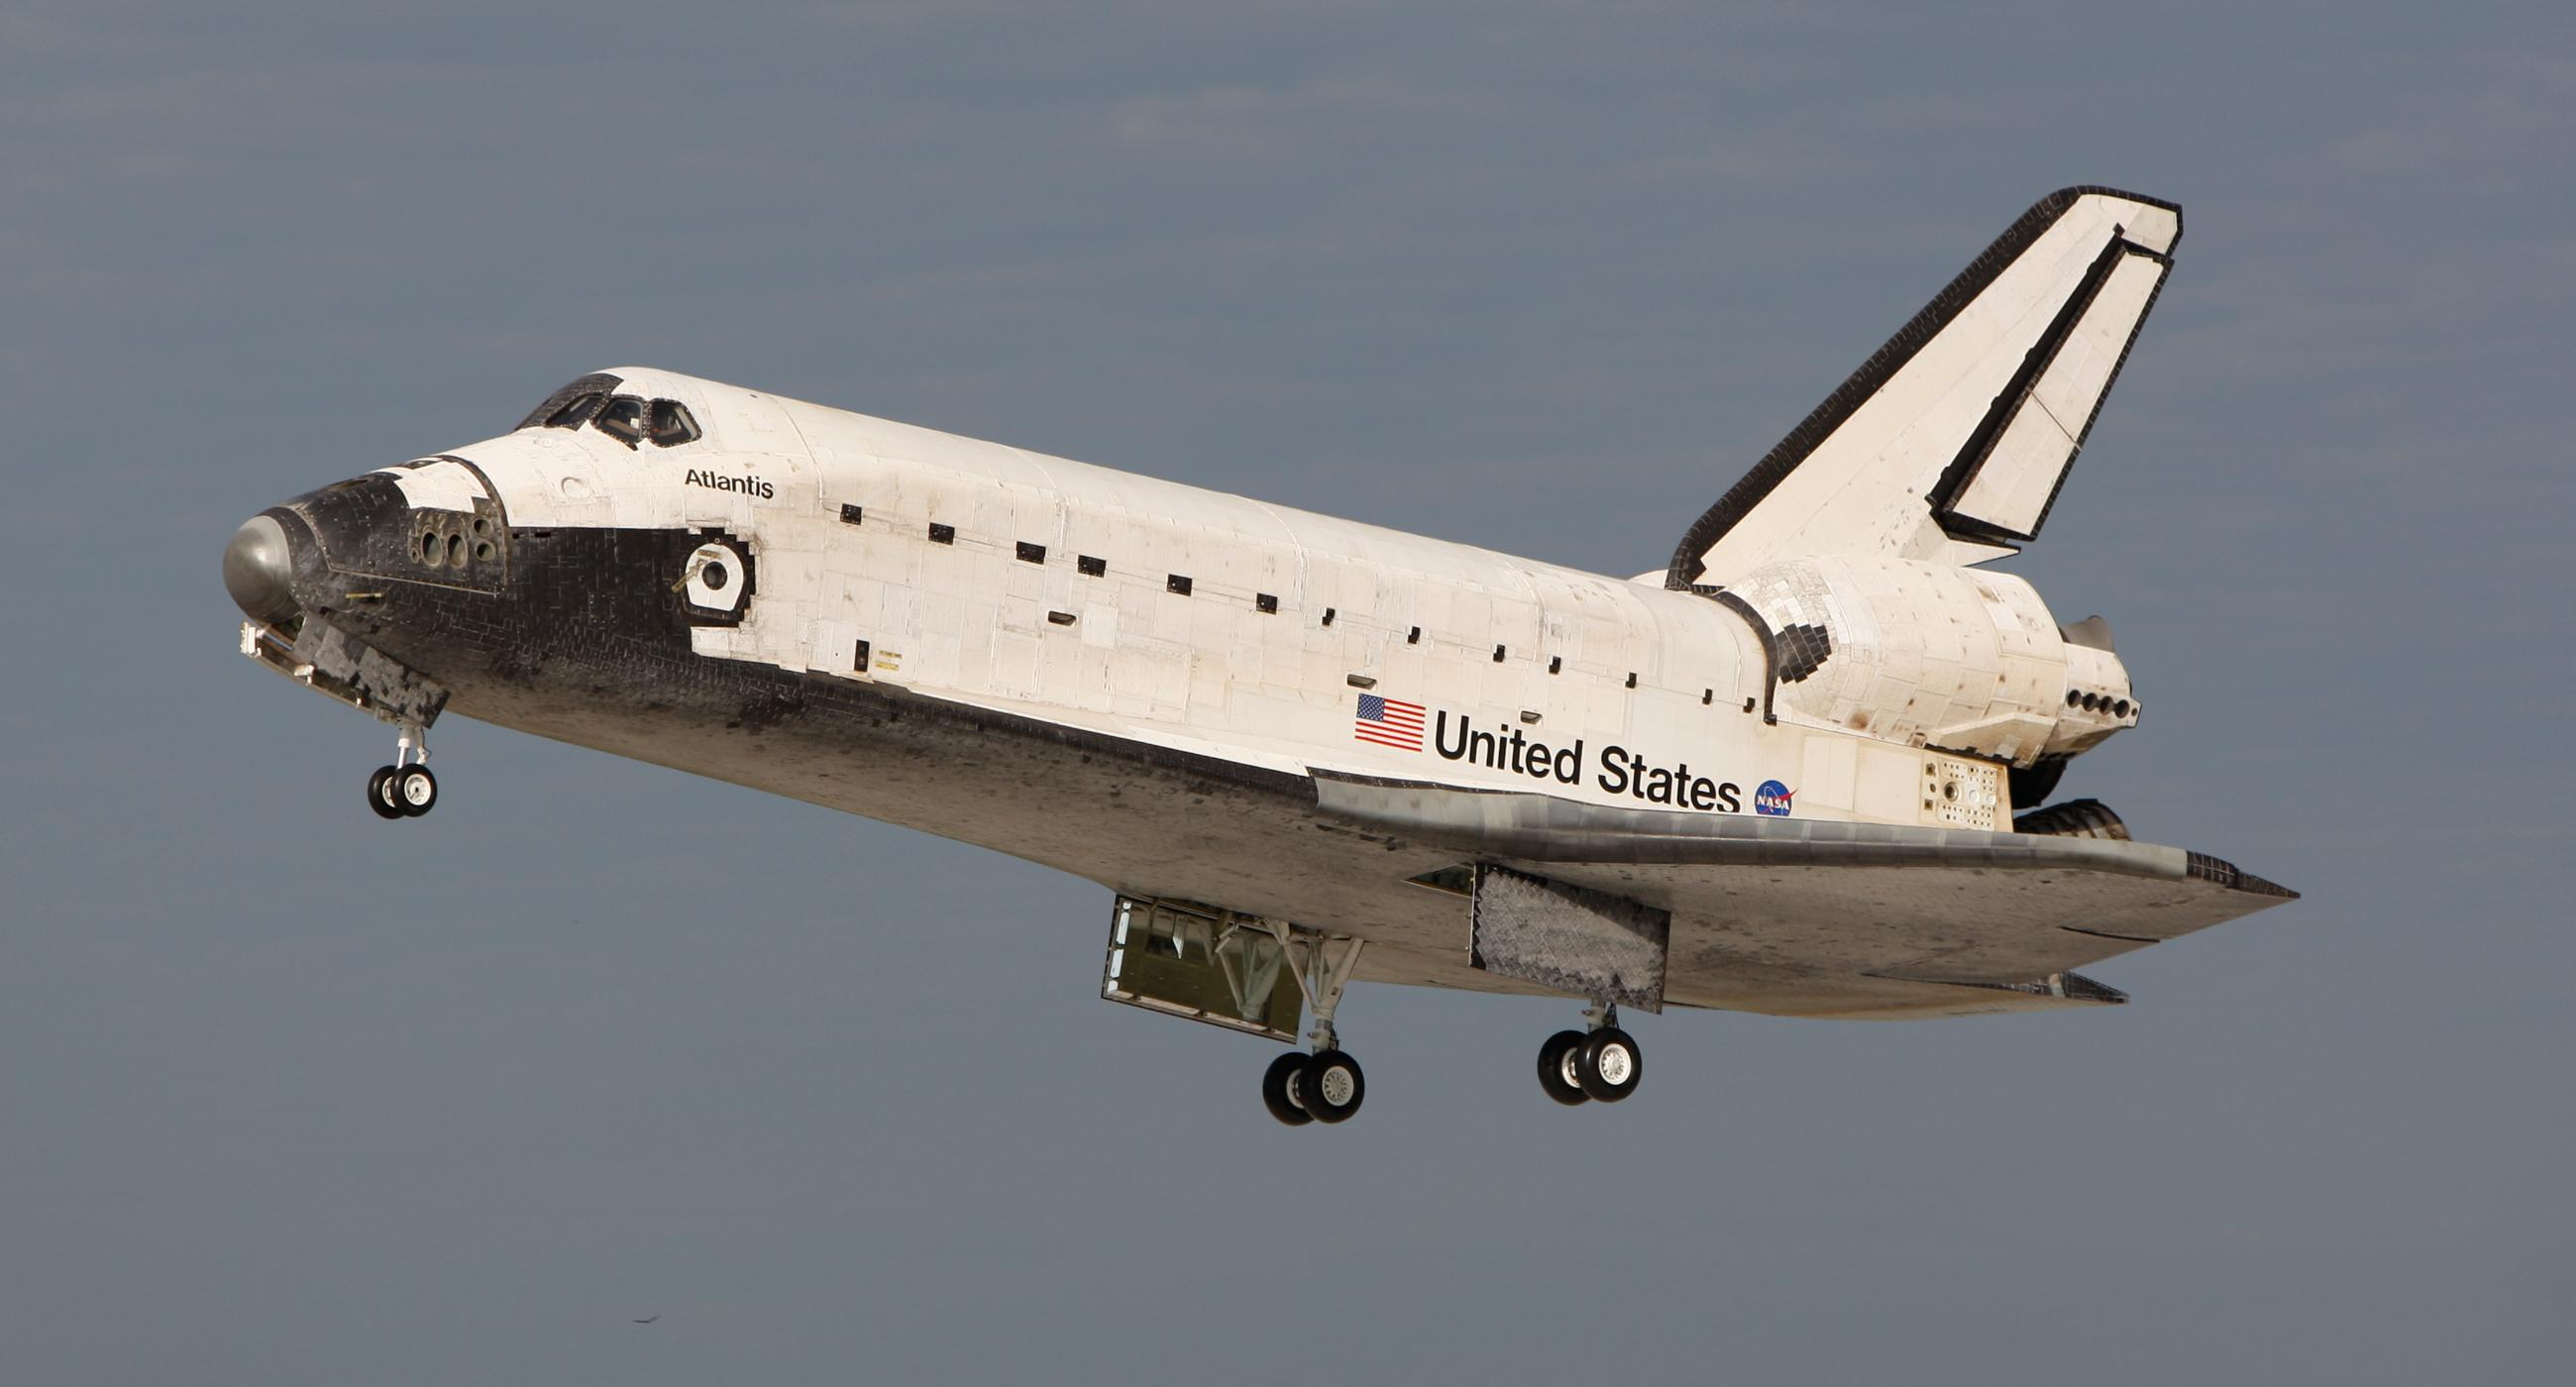 space shuttle atlantis which is orbiter - photo #10